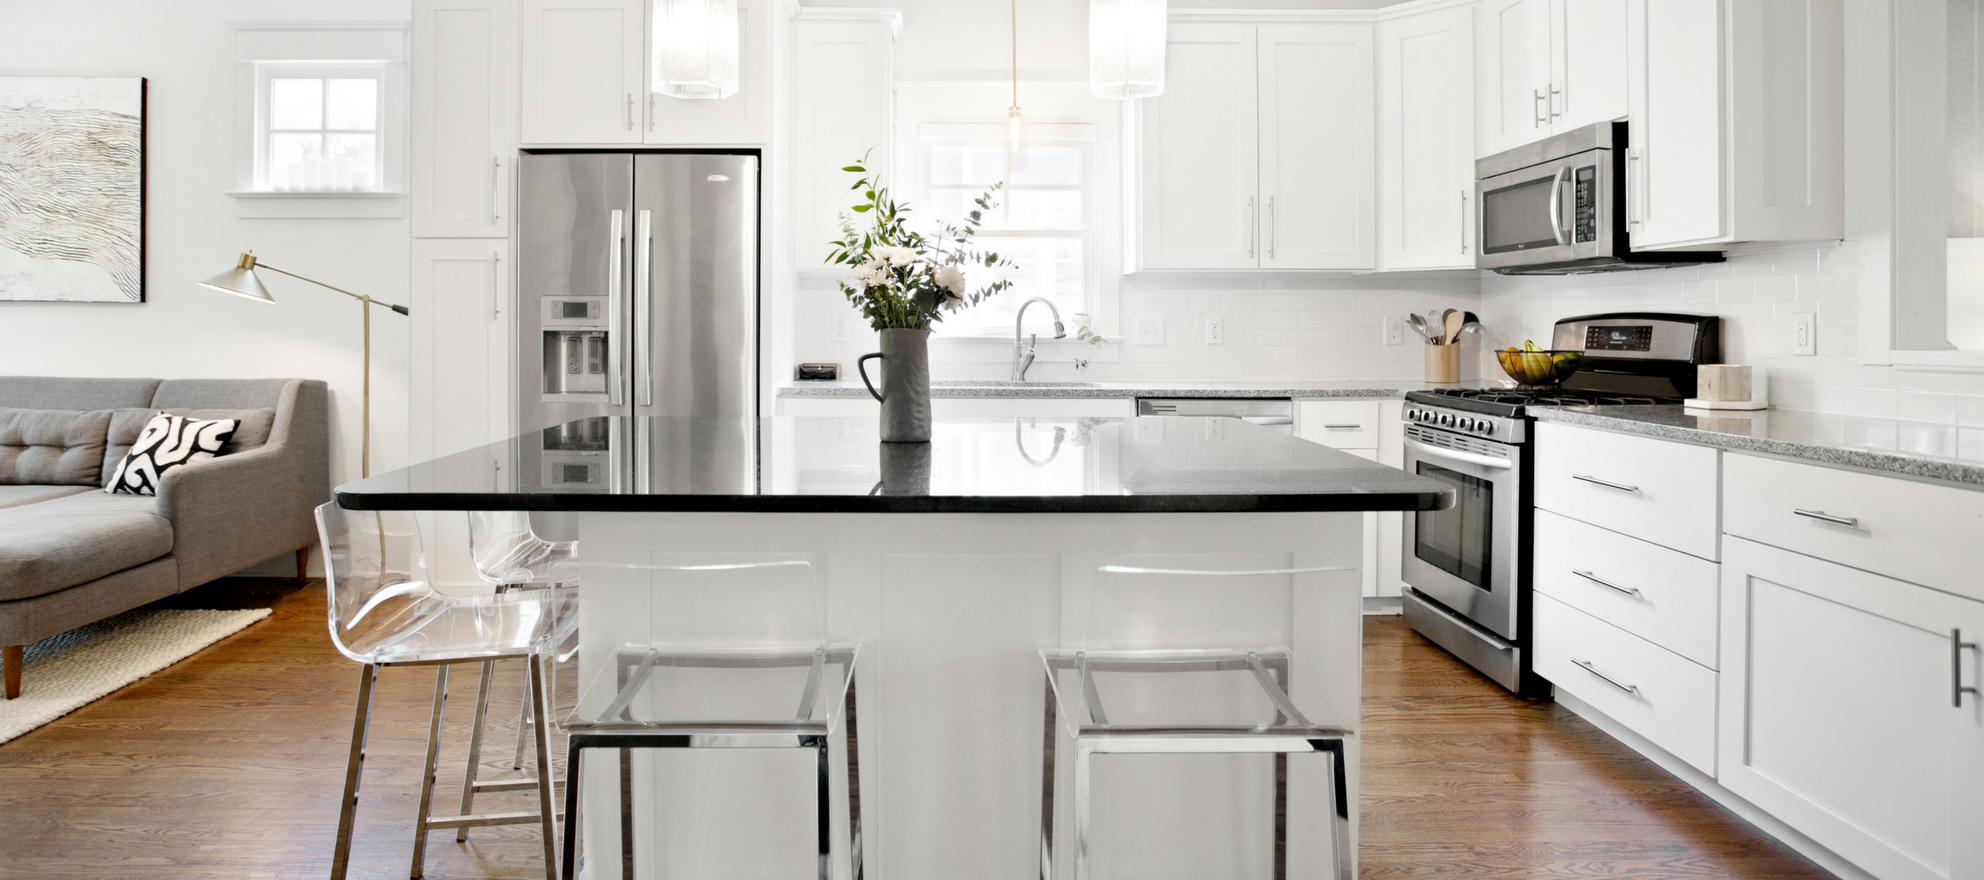 - What's Hot And What's Not In 2018 Kitchen Trends - Inman